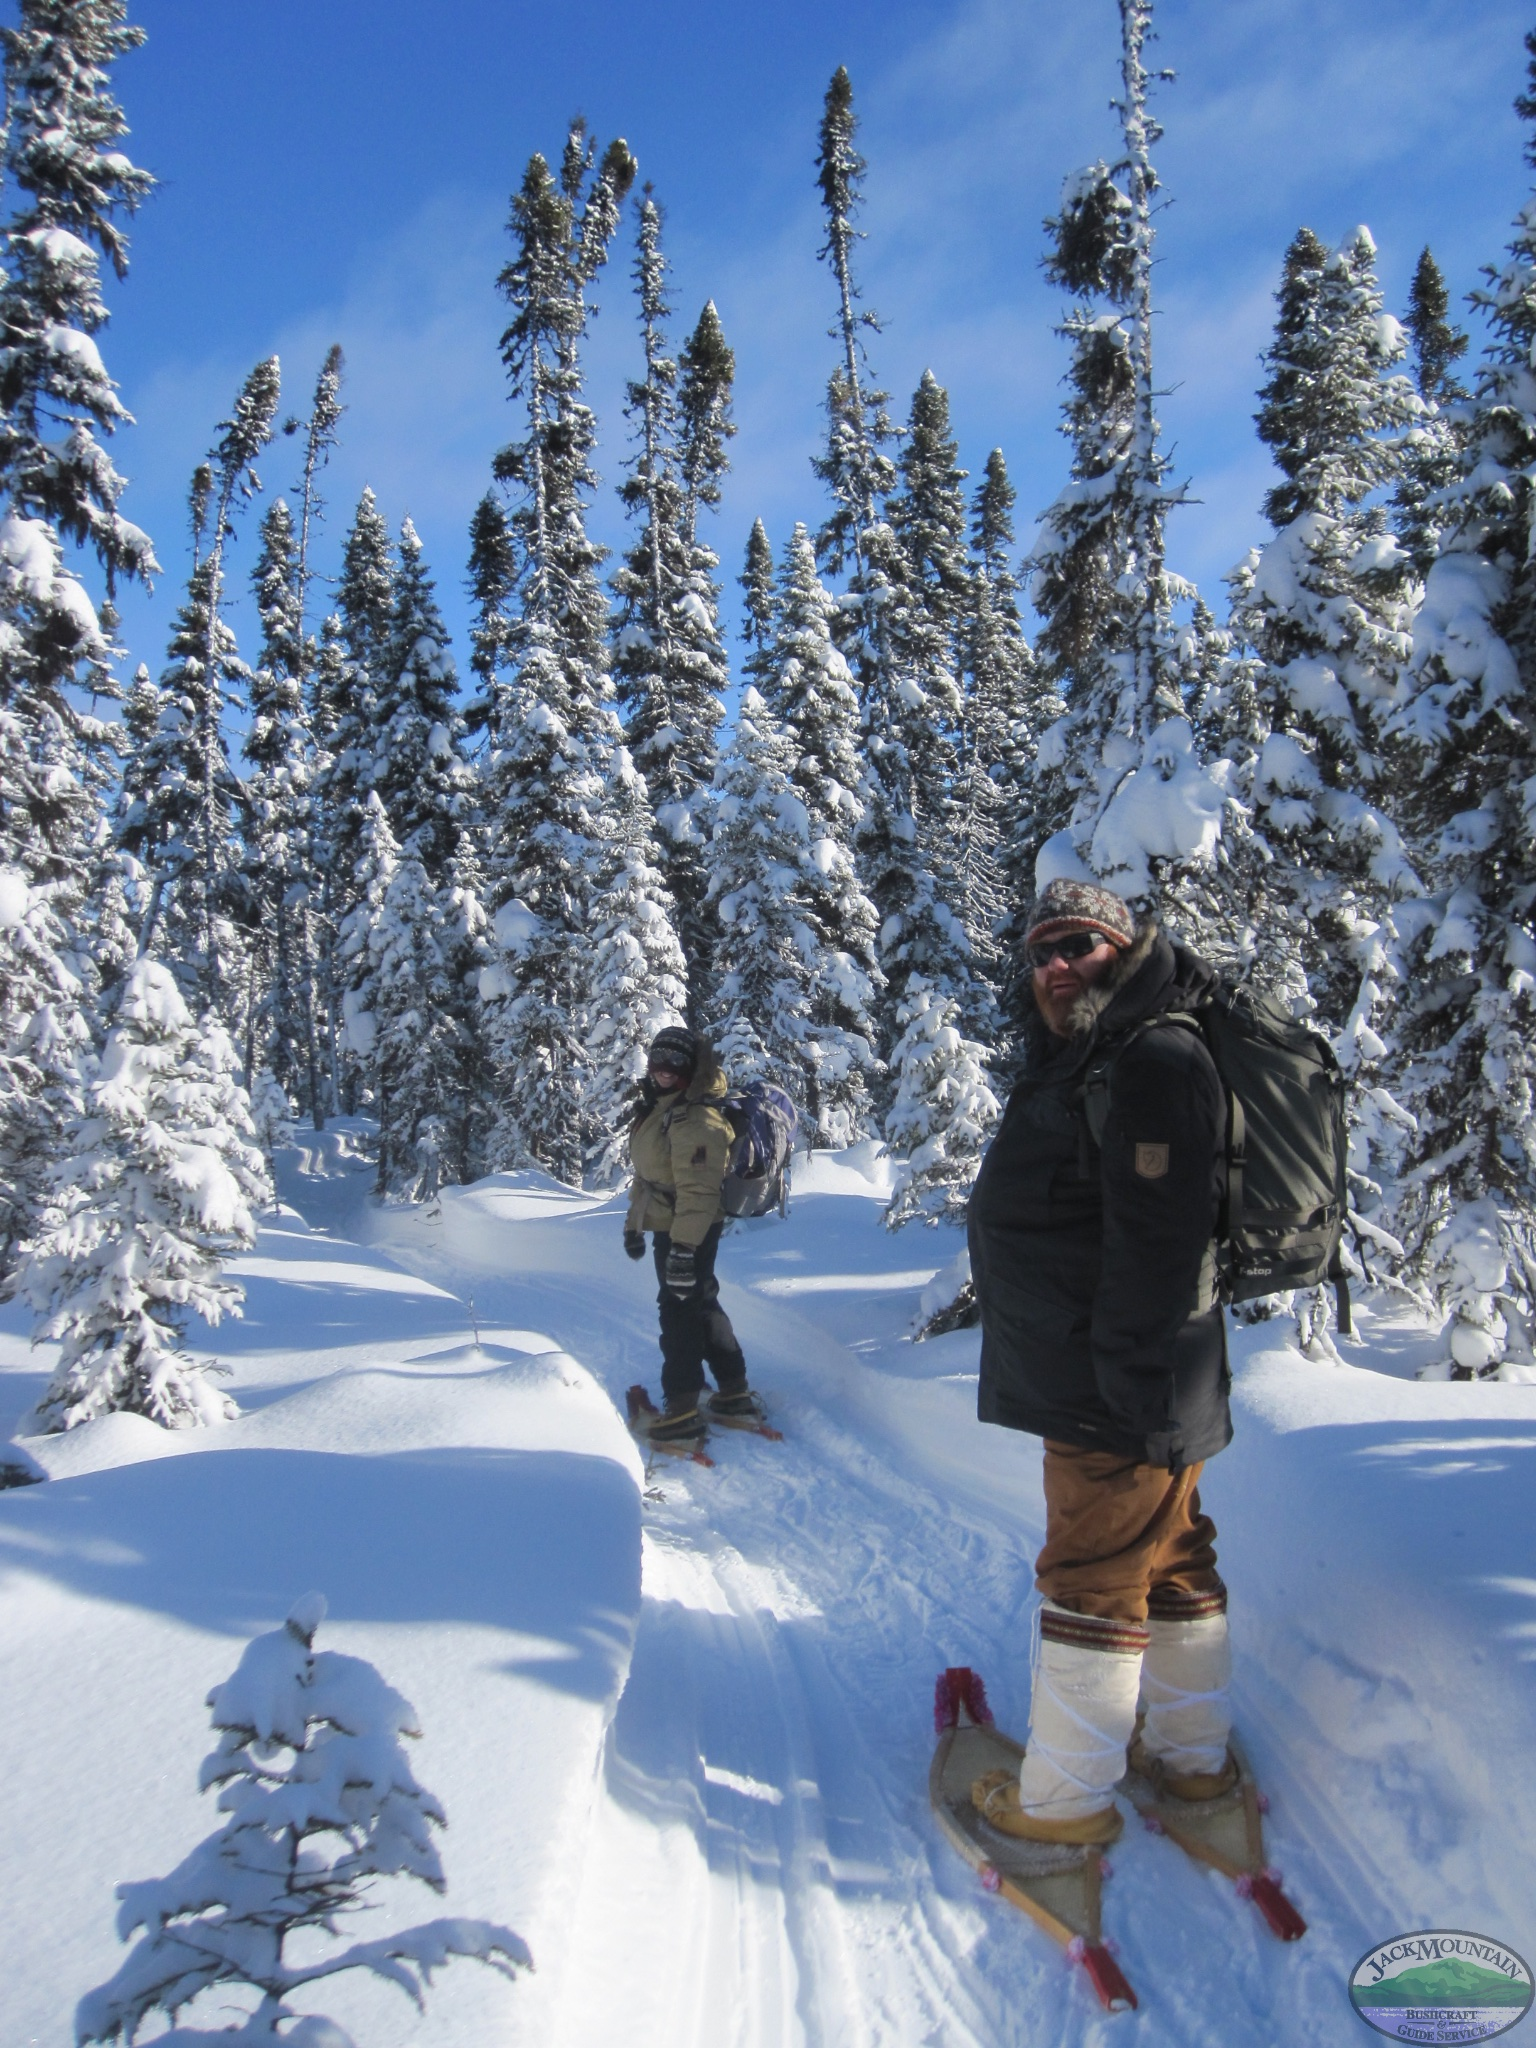 Snowshoeing Down The Trail